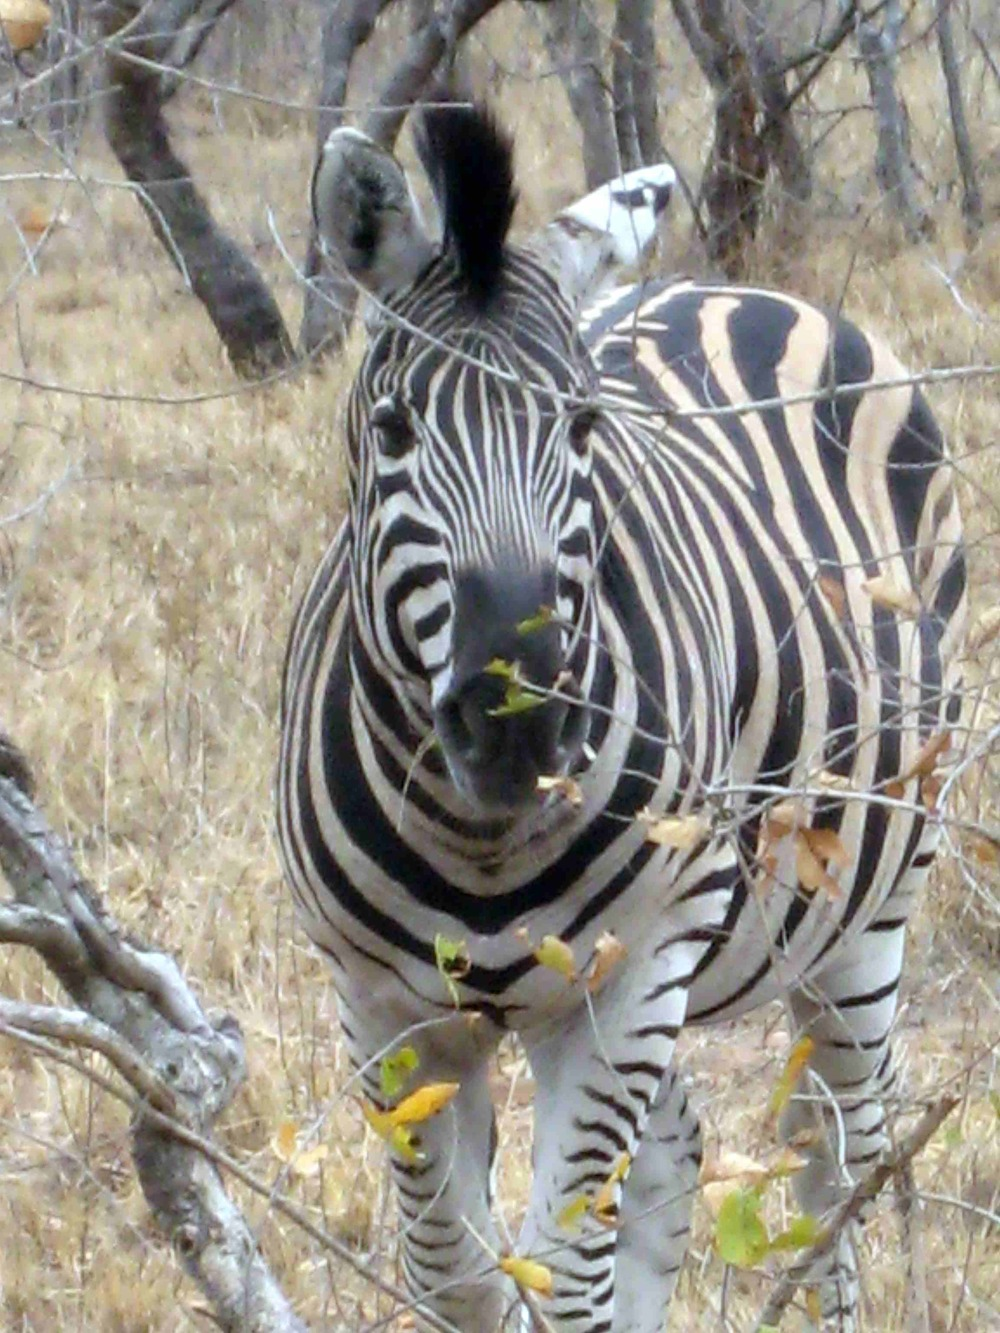 A zebra that came up to our car as we were driving through Kruger National Park in South Africa